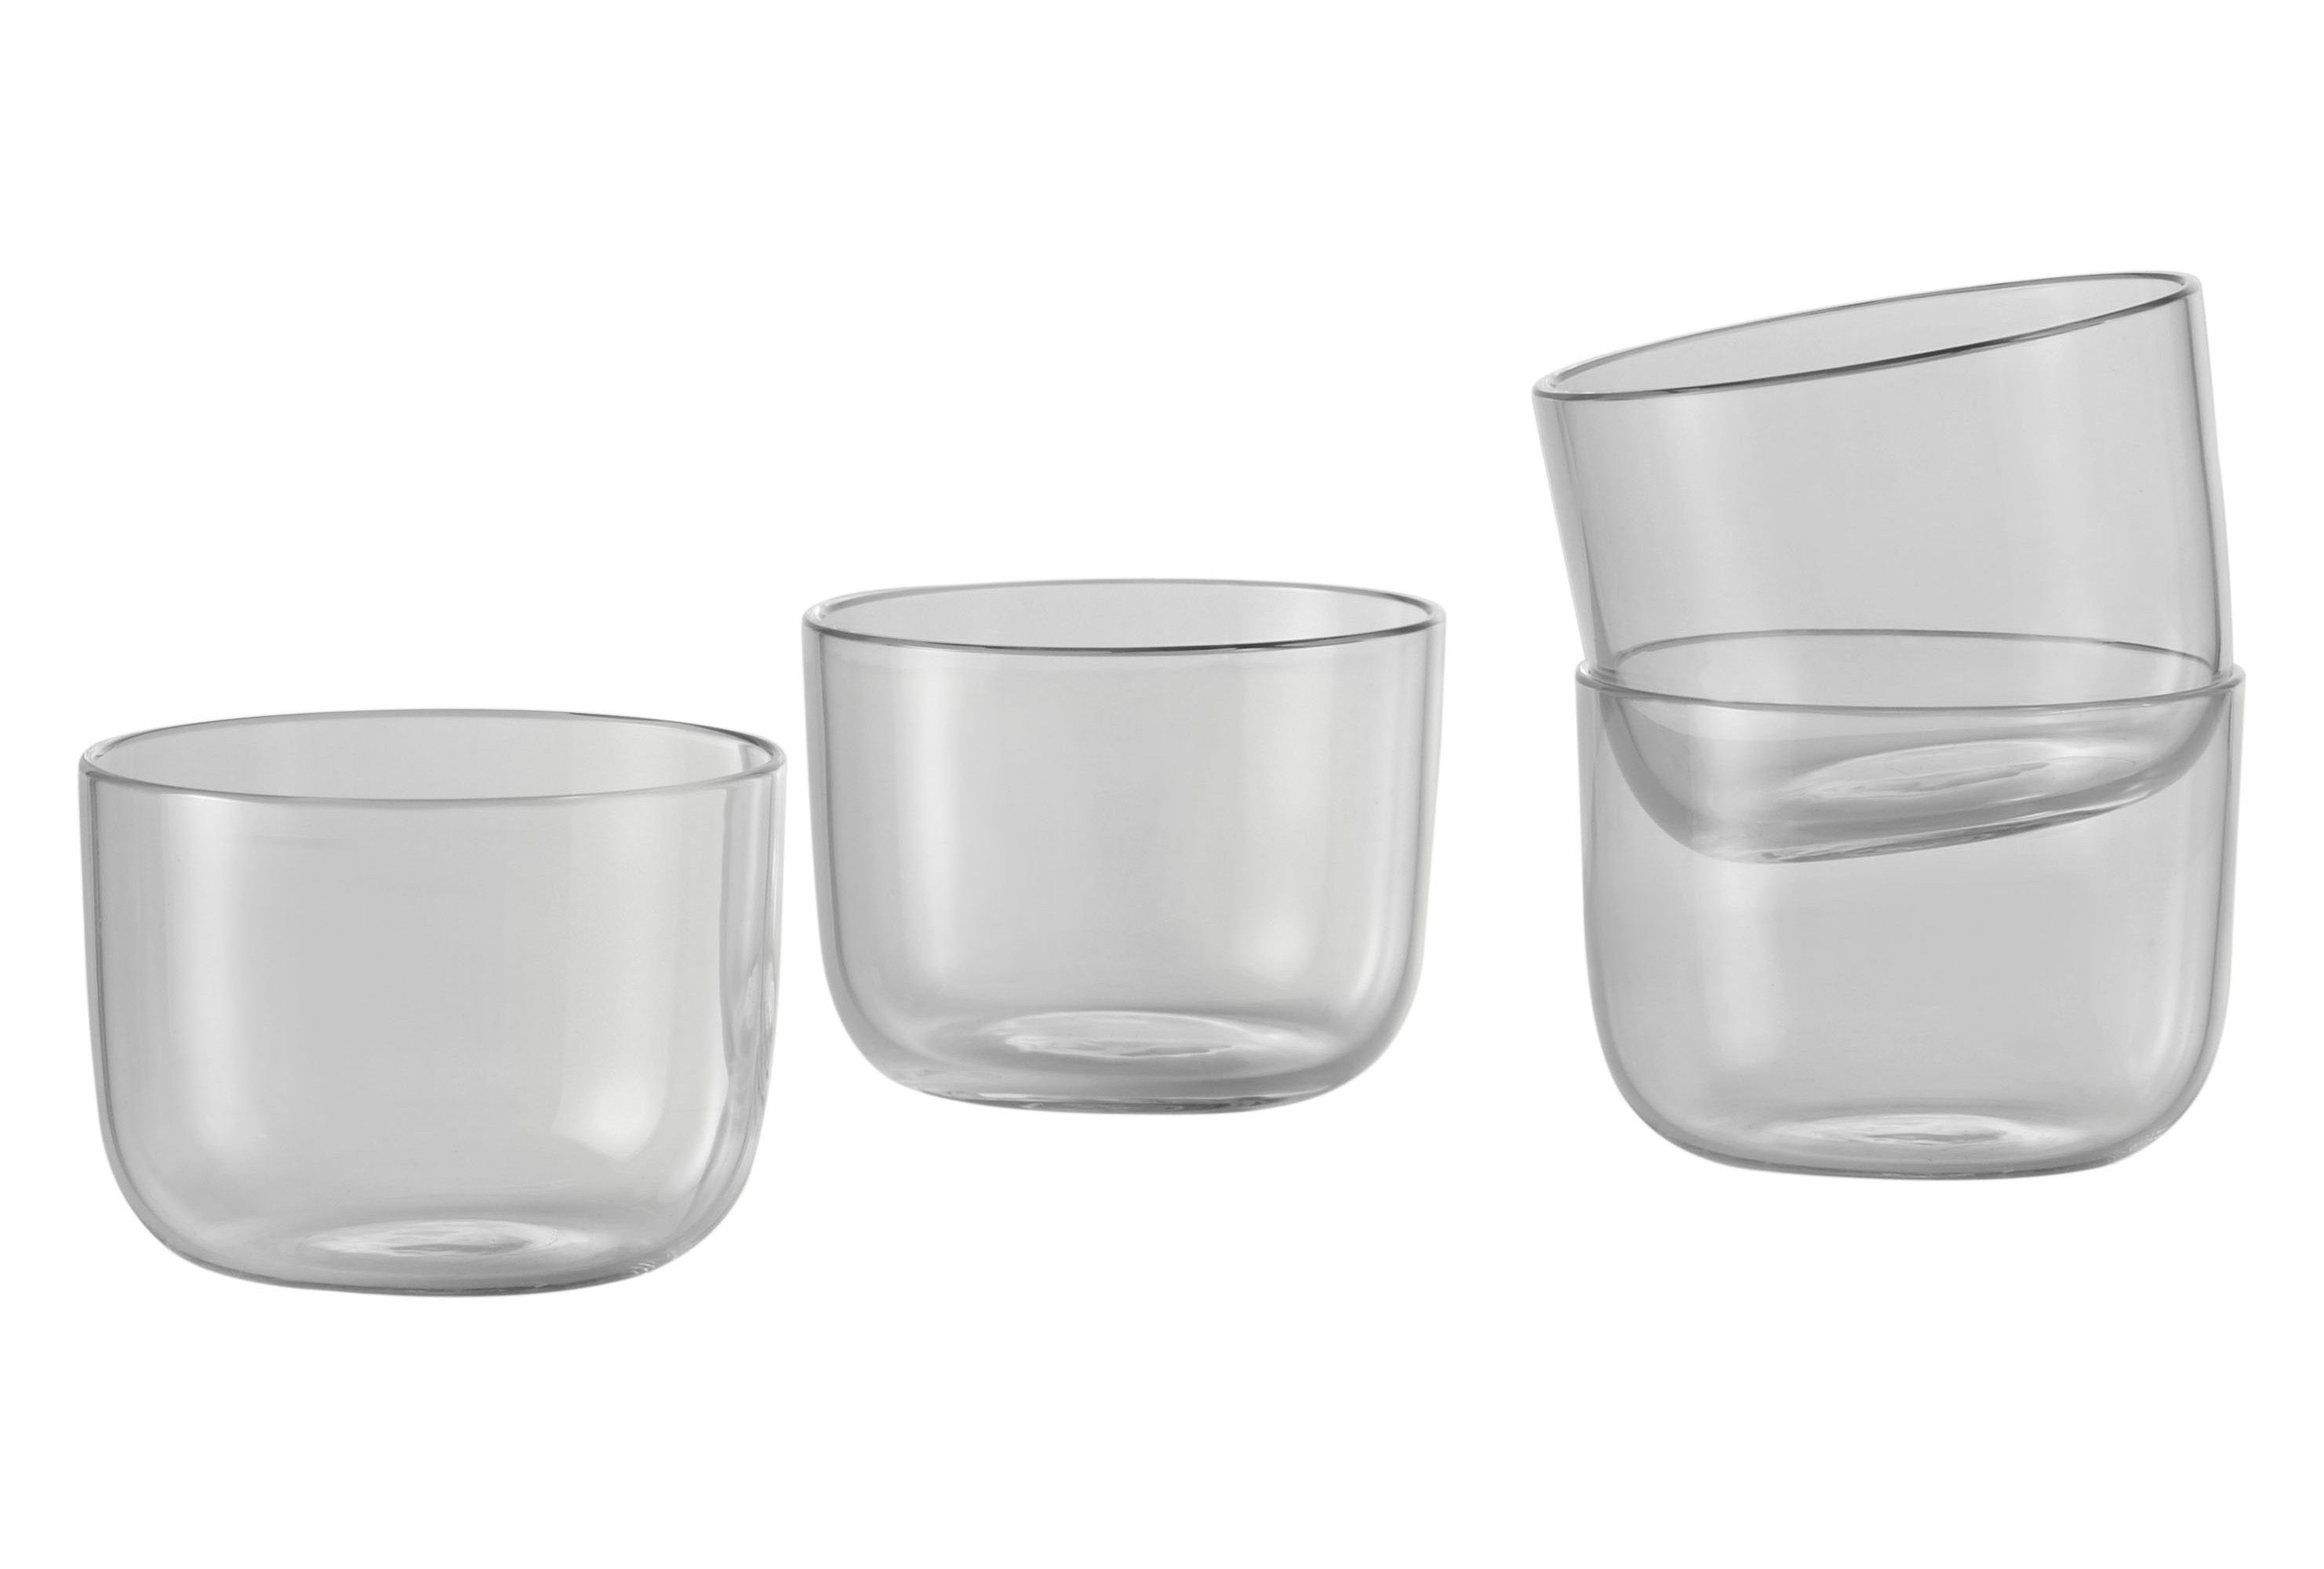 Tableware - Wine Glasses & Glassware - Corky Glass - sSet of 4 by Muuto - Clear - Glass